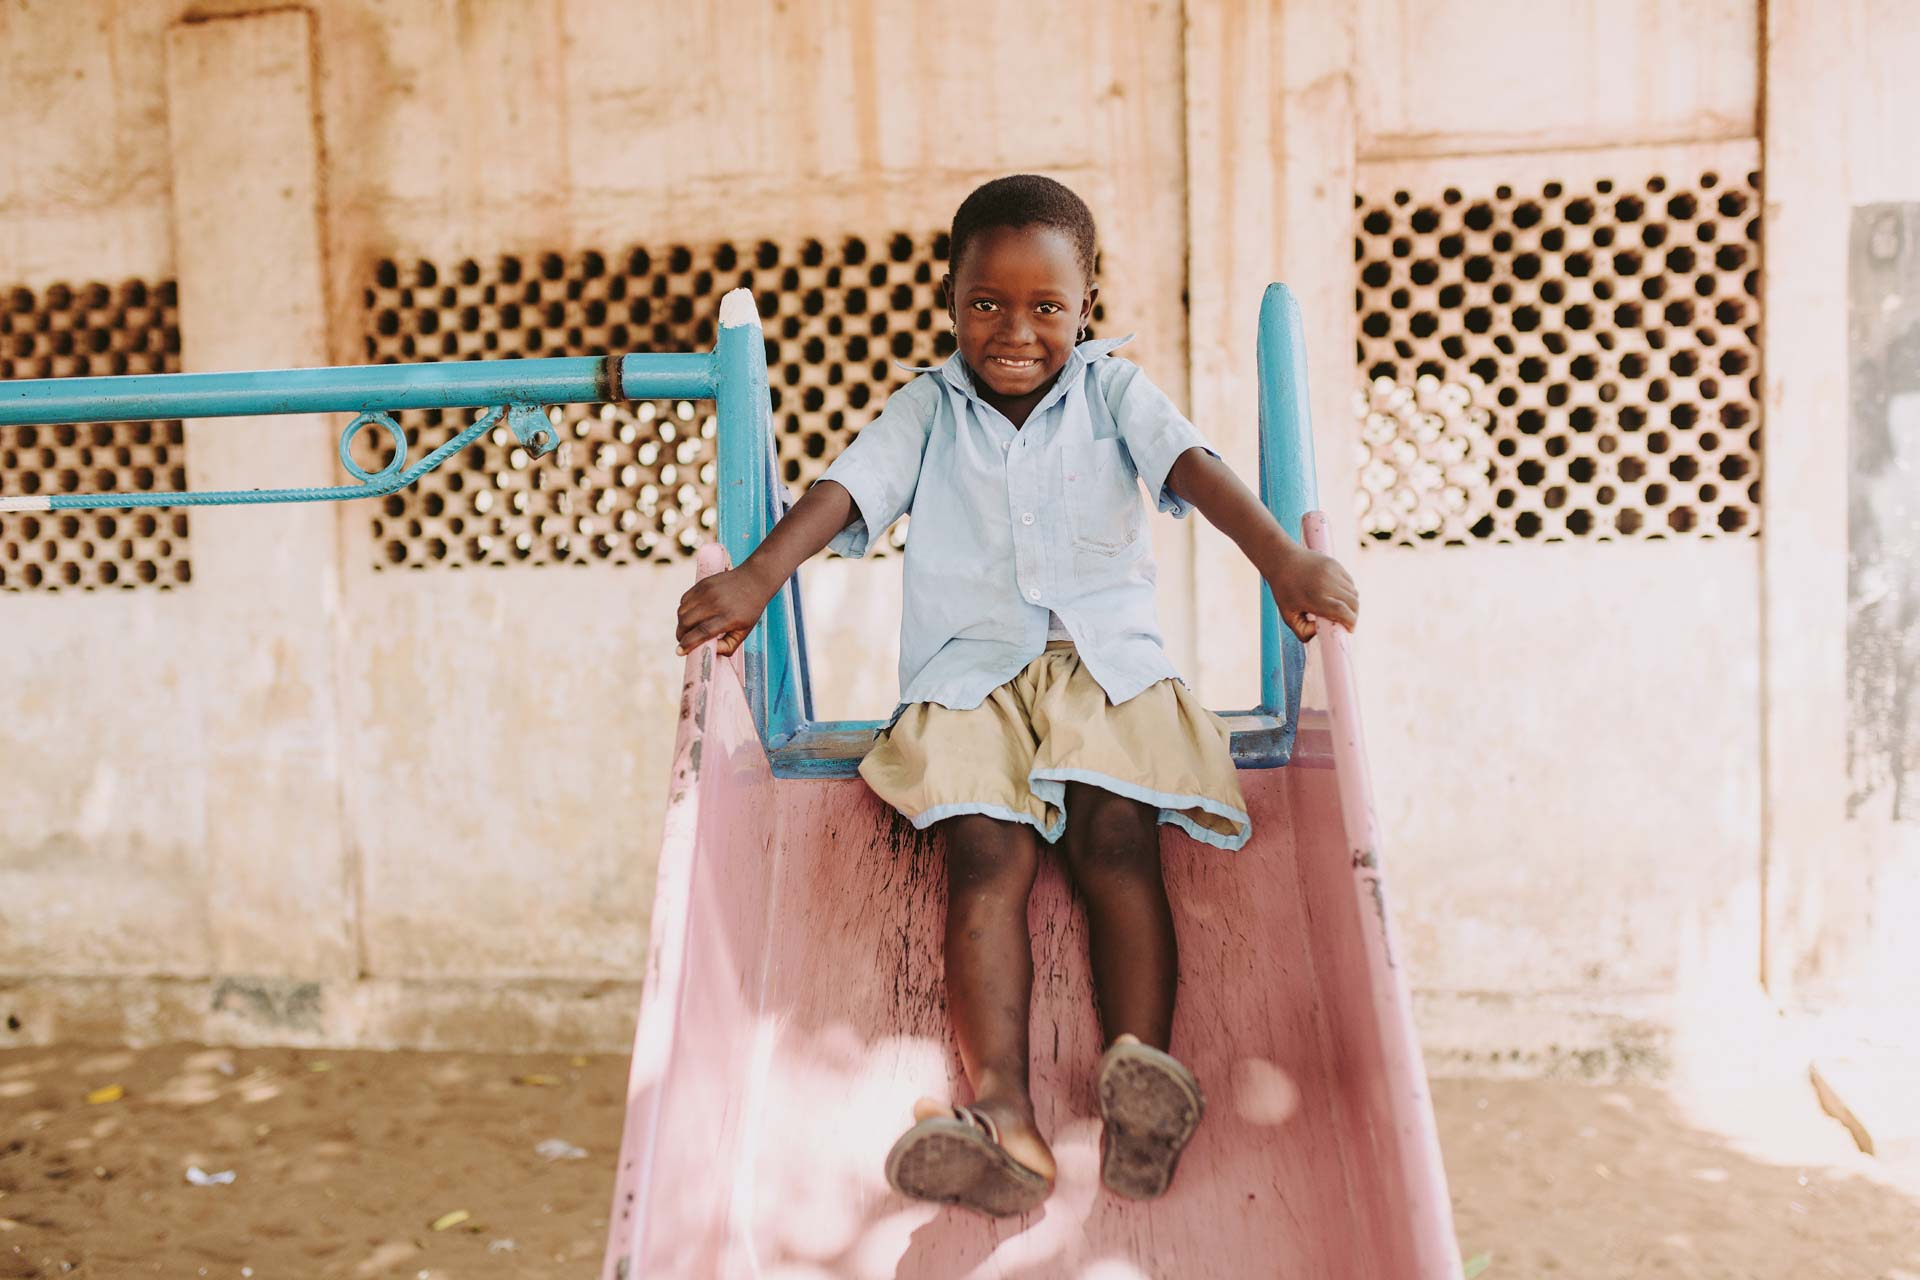 Aklobessi, girl, child, wearing a blue shirt, brown skirt, small earrings, smiles as she is playing, play time, play, sliding down the slide outside at the center on the playground equipment.